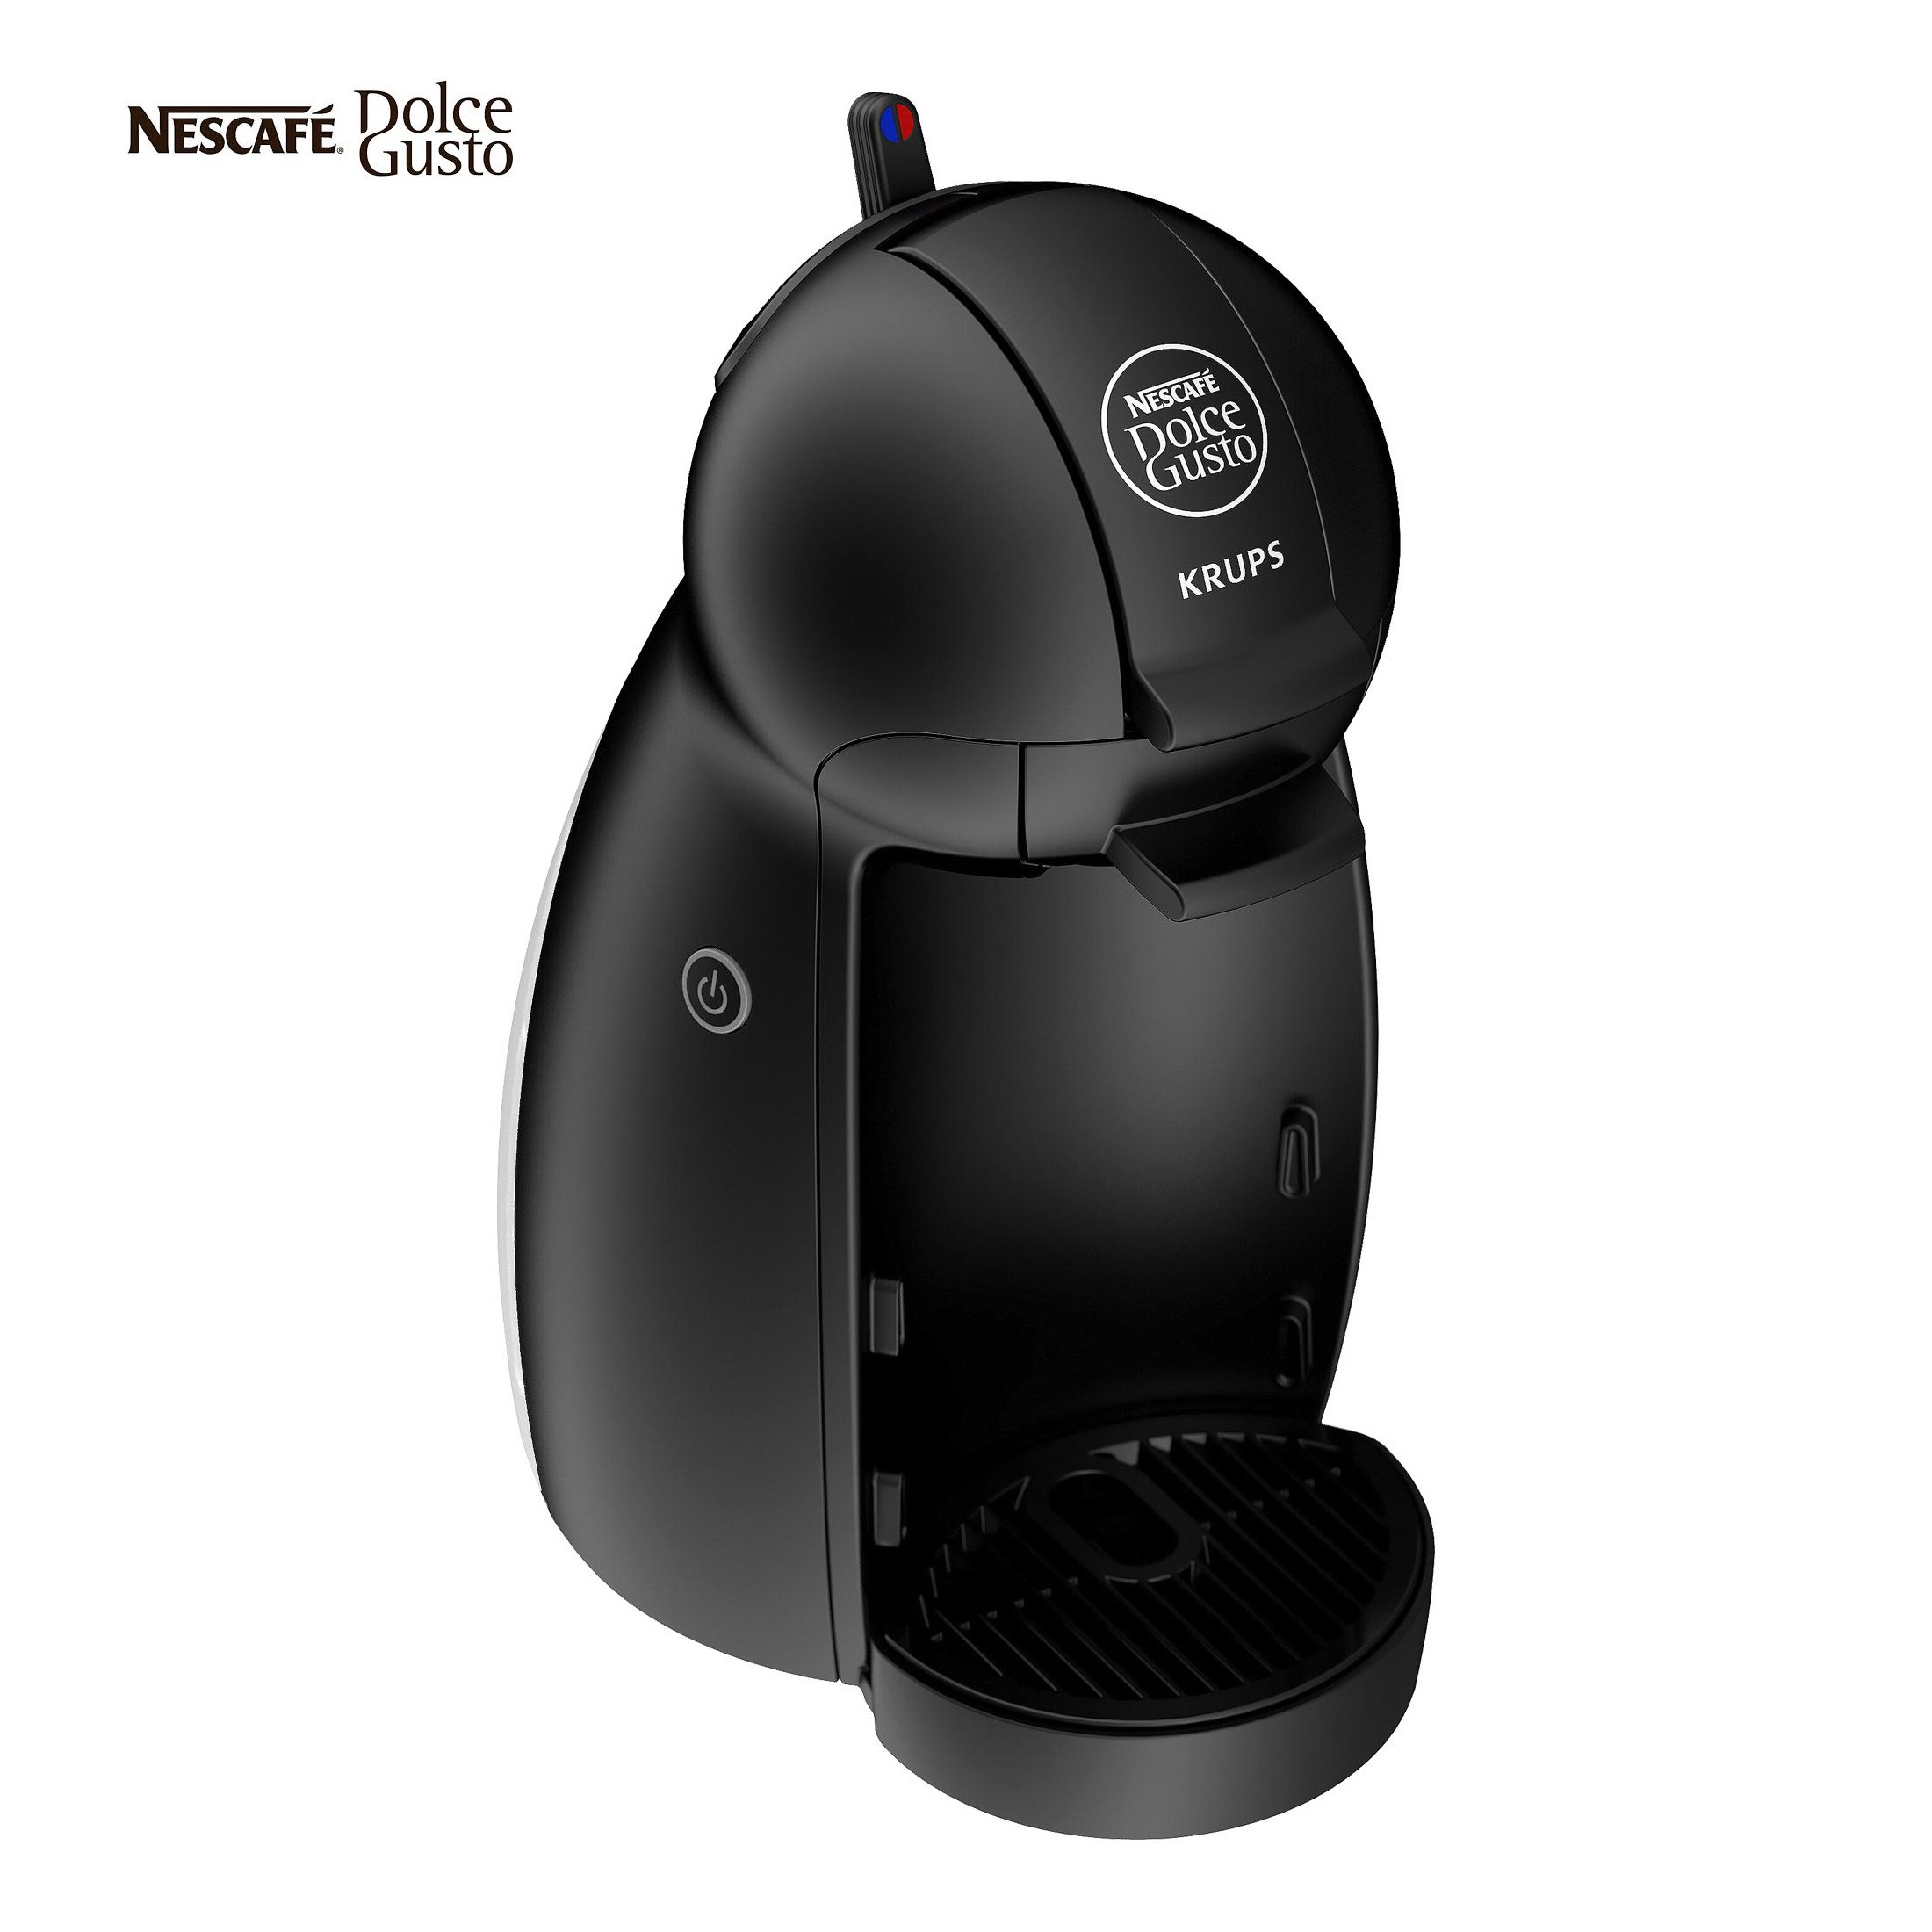 dolce gusto coffee maker instructions